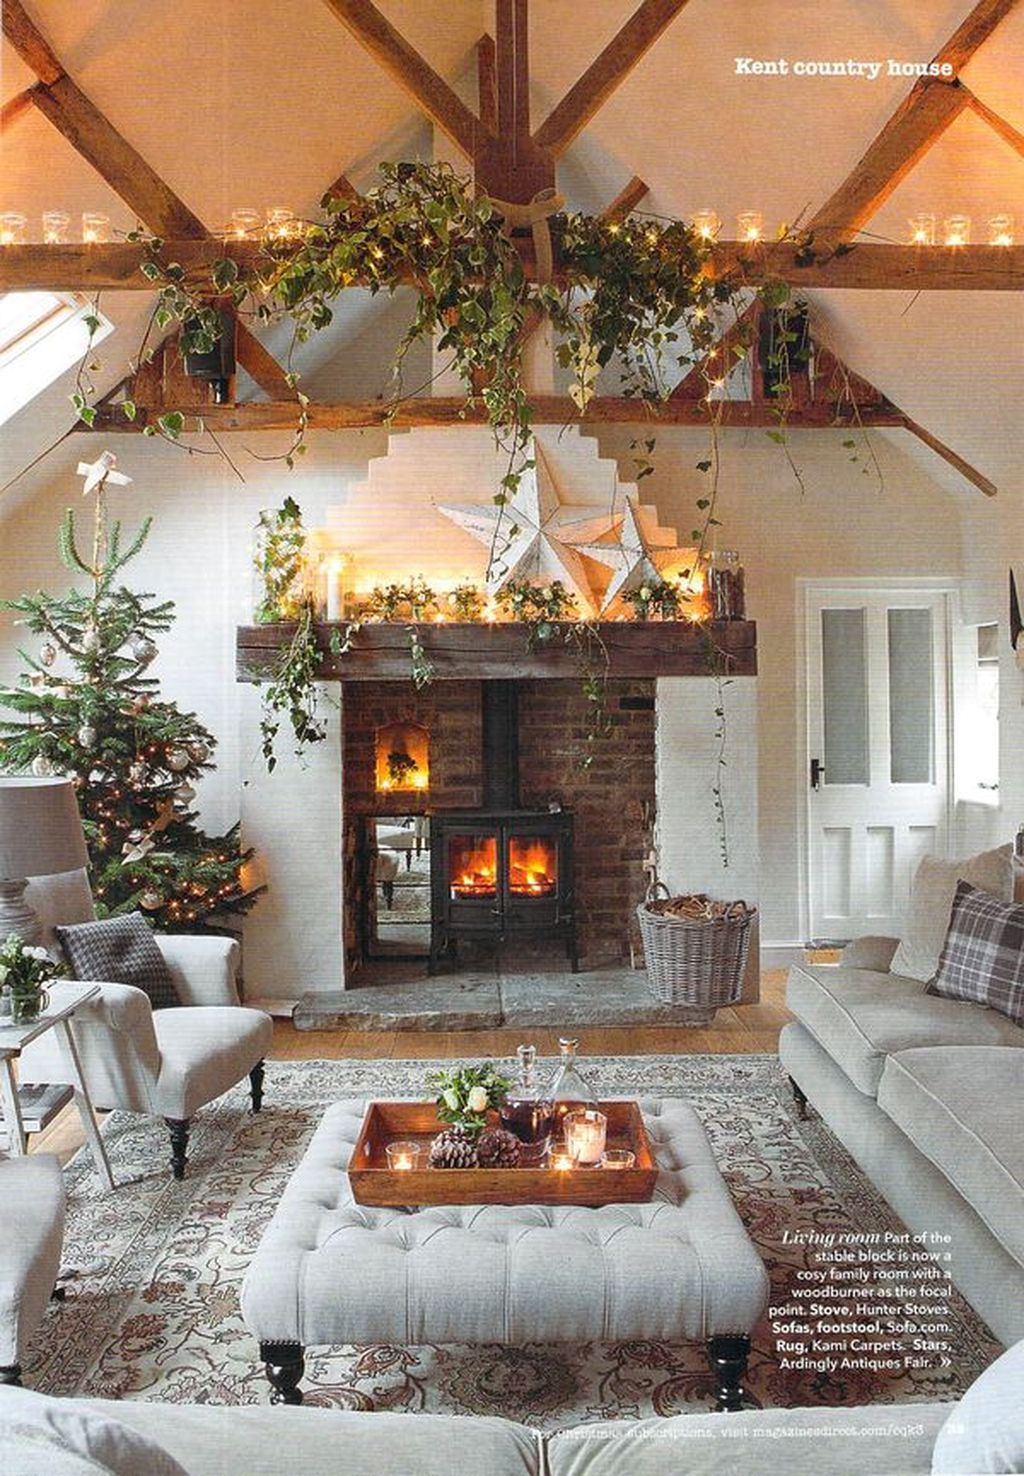 Inspiring Rustic Christmas Fireplace Ideas To Makes Your Home Warmer 48